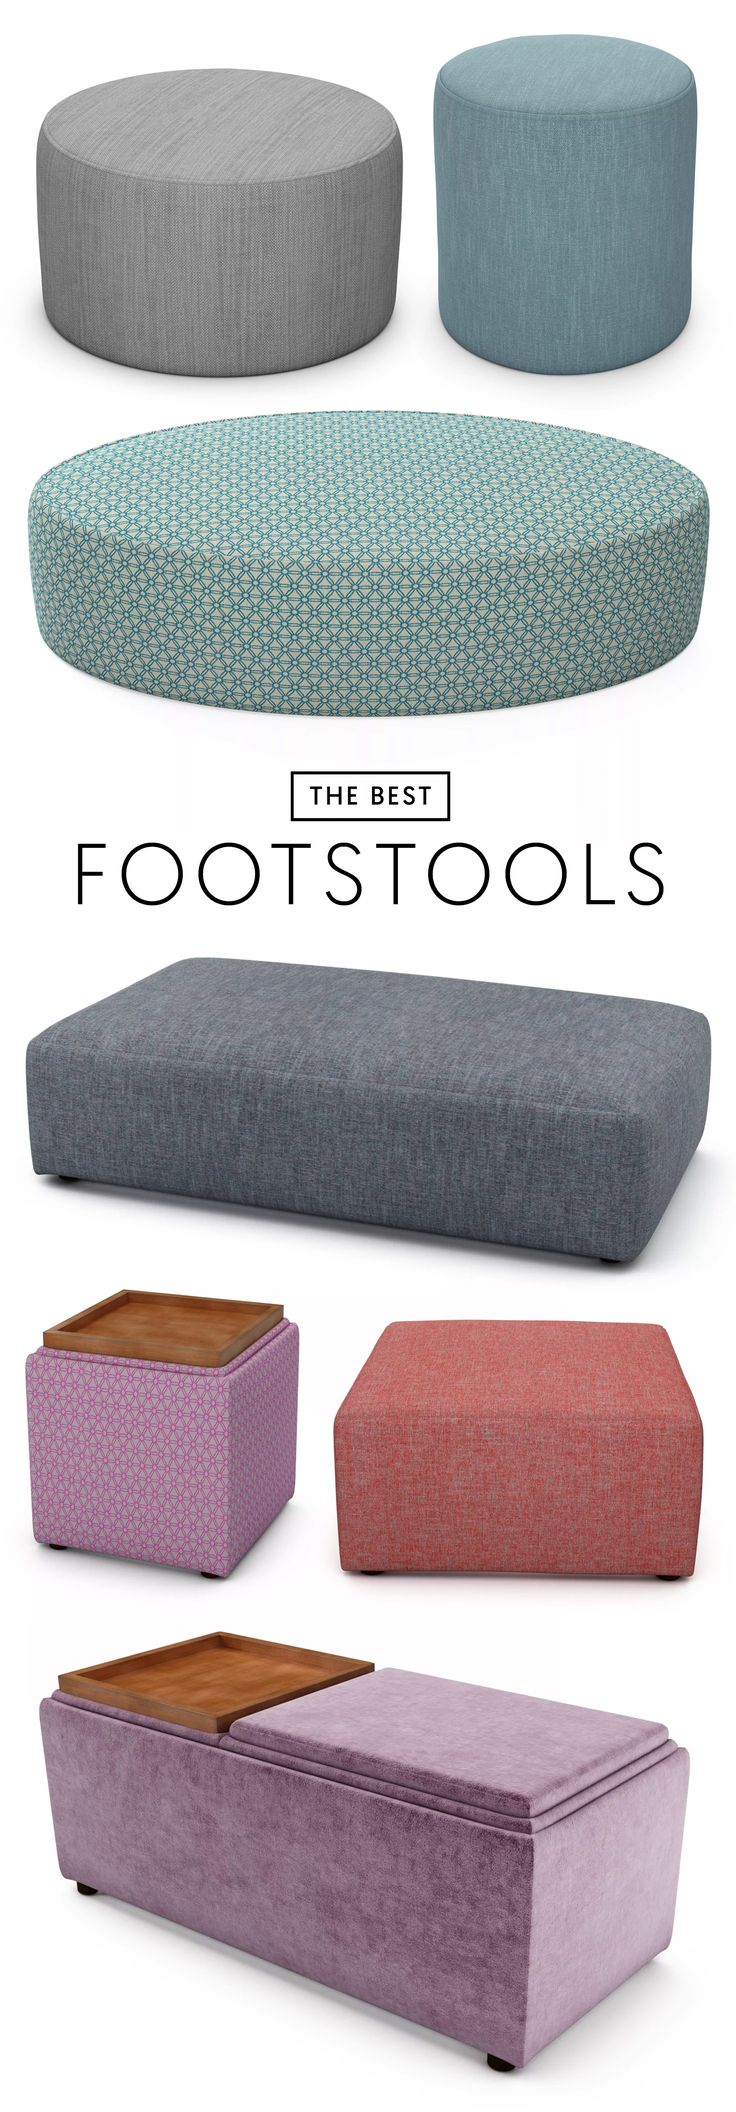 The Best 7 Footstools | 1. Harrison Circle in Pigeon Foot 2. Harrison Tall in Peacock Tail 3. Harrison Oval in Stargazer Blue 4. Taylor Oblong in Inkcap Mushroom 5. Taylor Storage Cube in Stargazer Pink 6. Taylor Square in Family Fire Coral 7. Taylor Storage Bench in Spring Squill #theloungeco #sofa #chair #footstool #ottoman #storage #stylishstorage #lounge #furniture